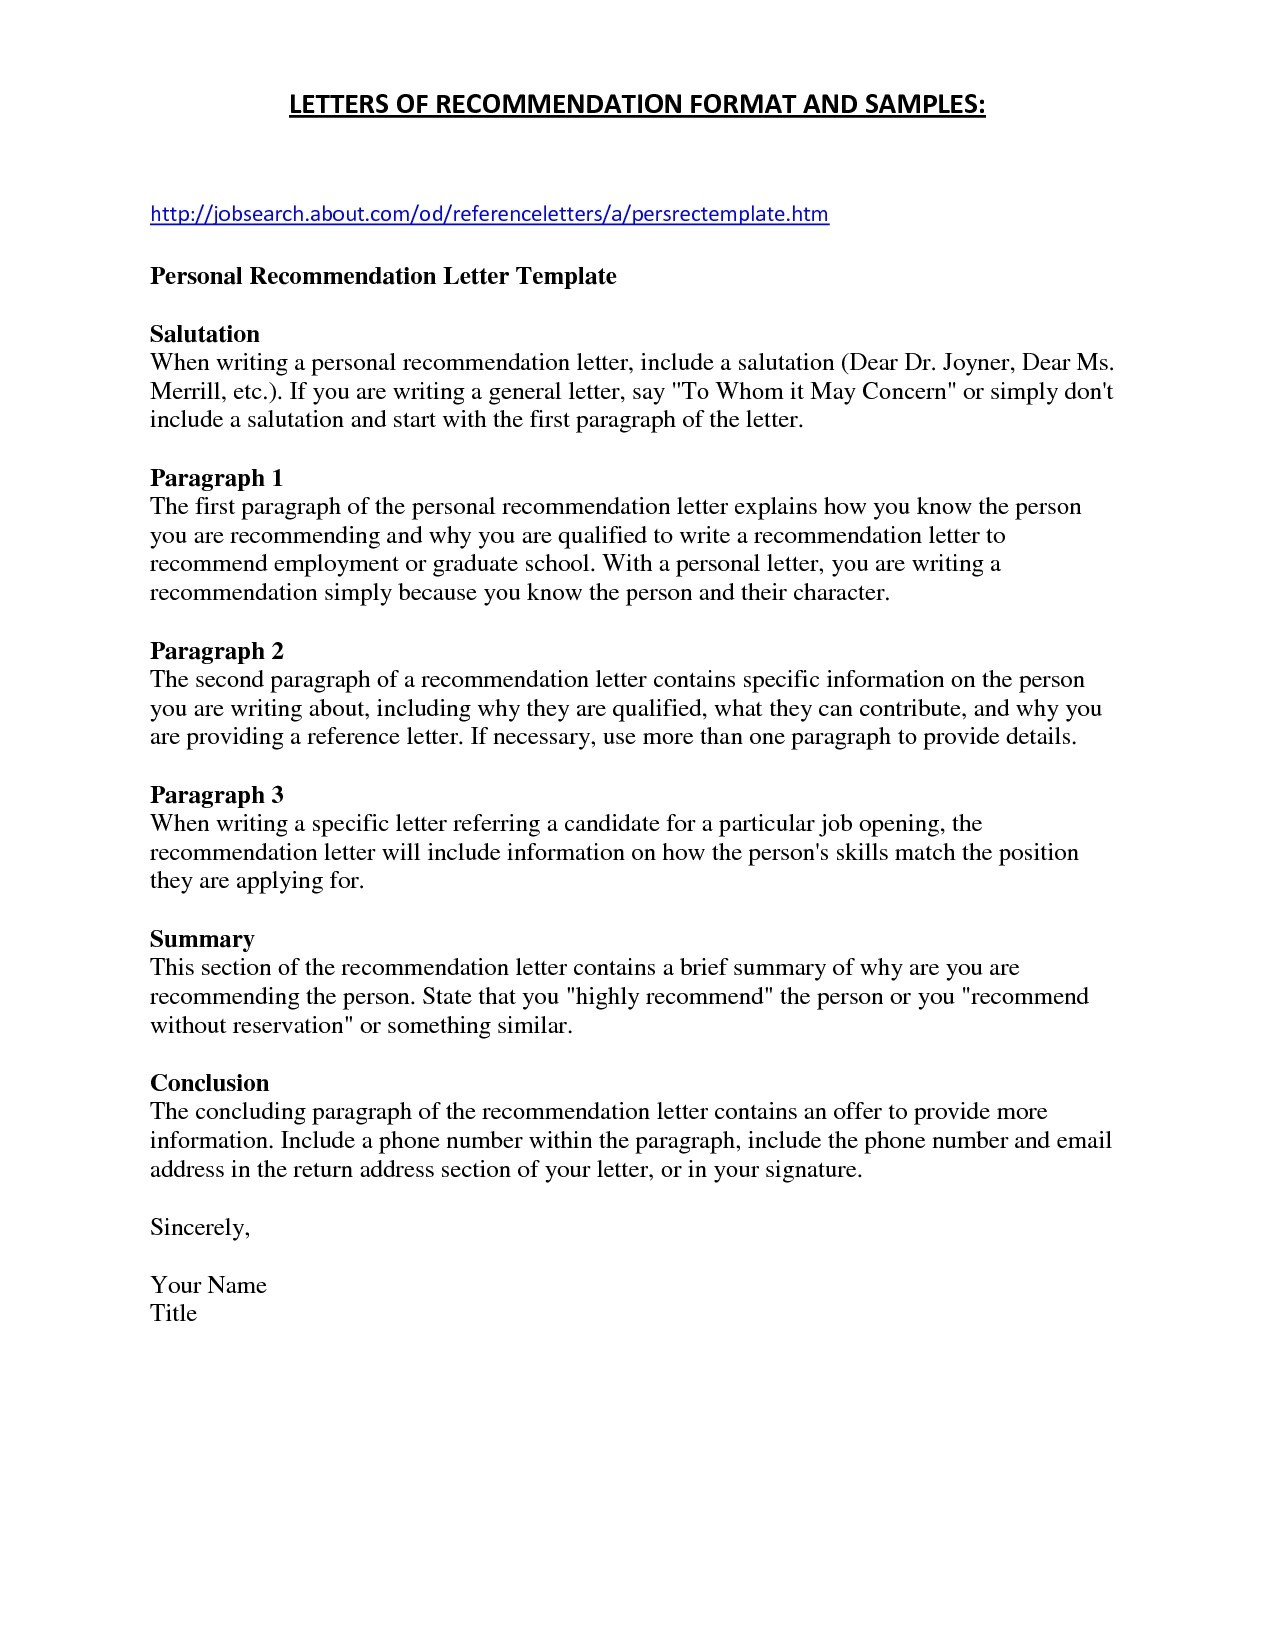 Phd Recommendation Letter Template Samples | Letter Cover Templates